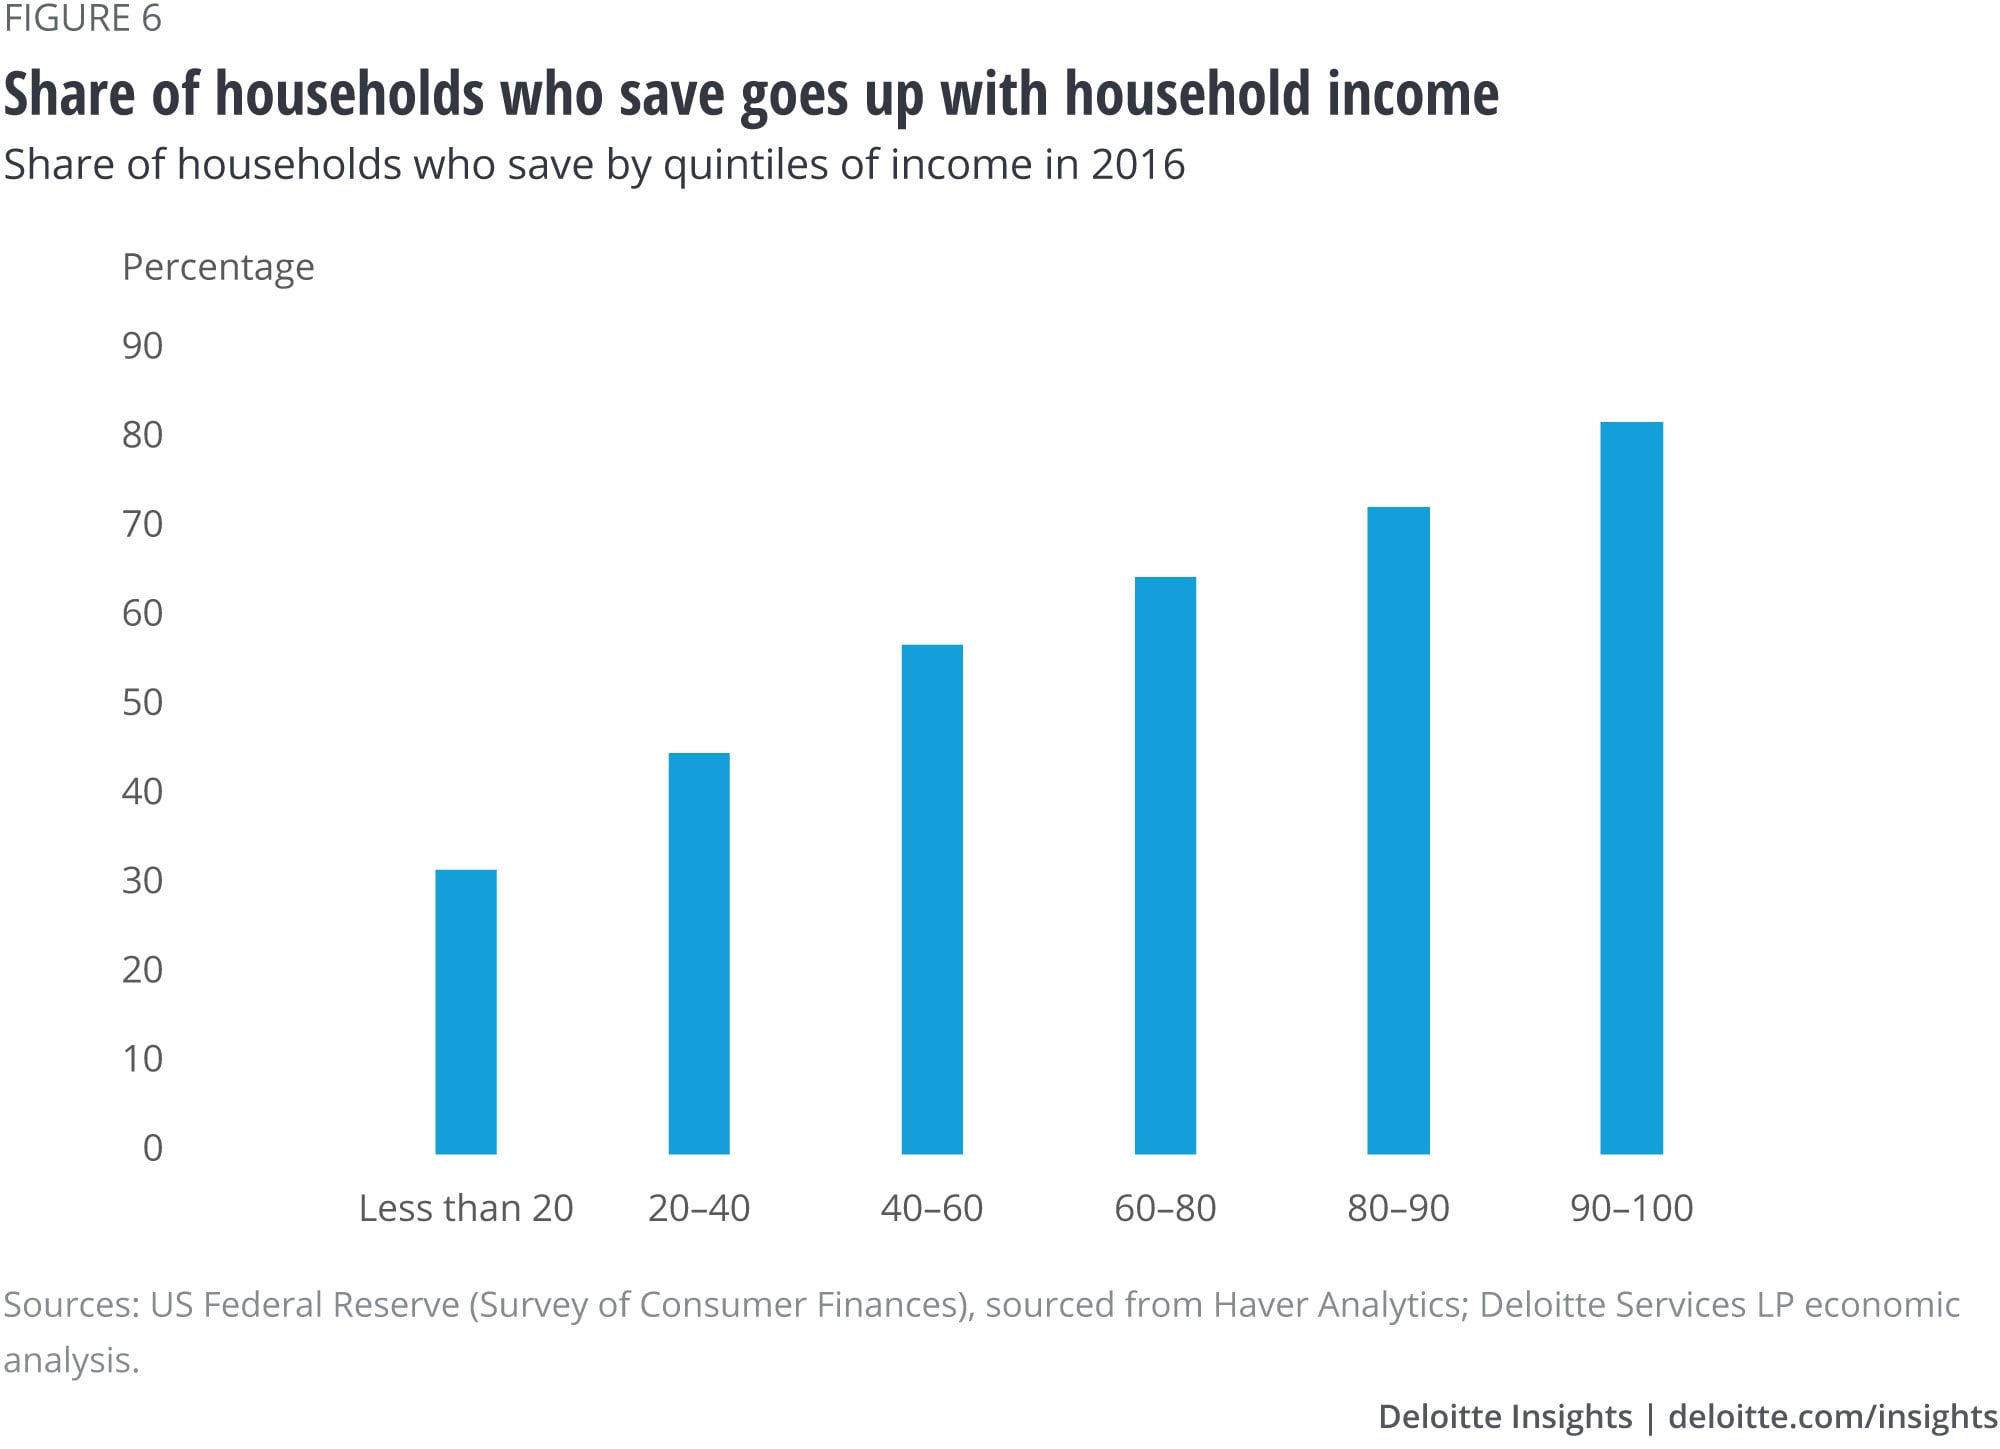 Share of households who save goes up with household income